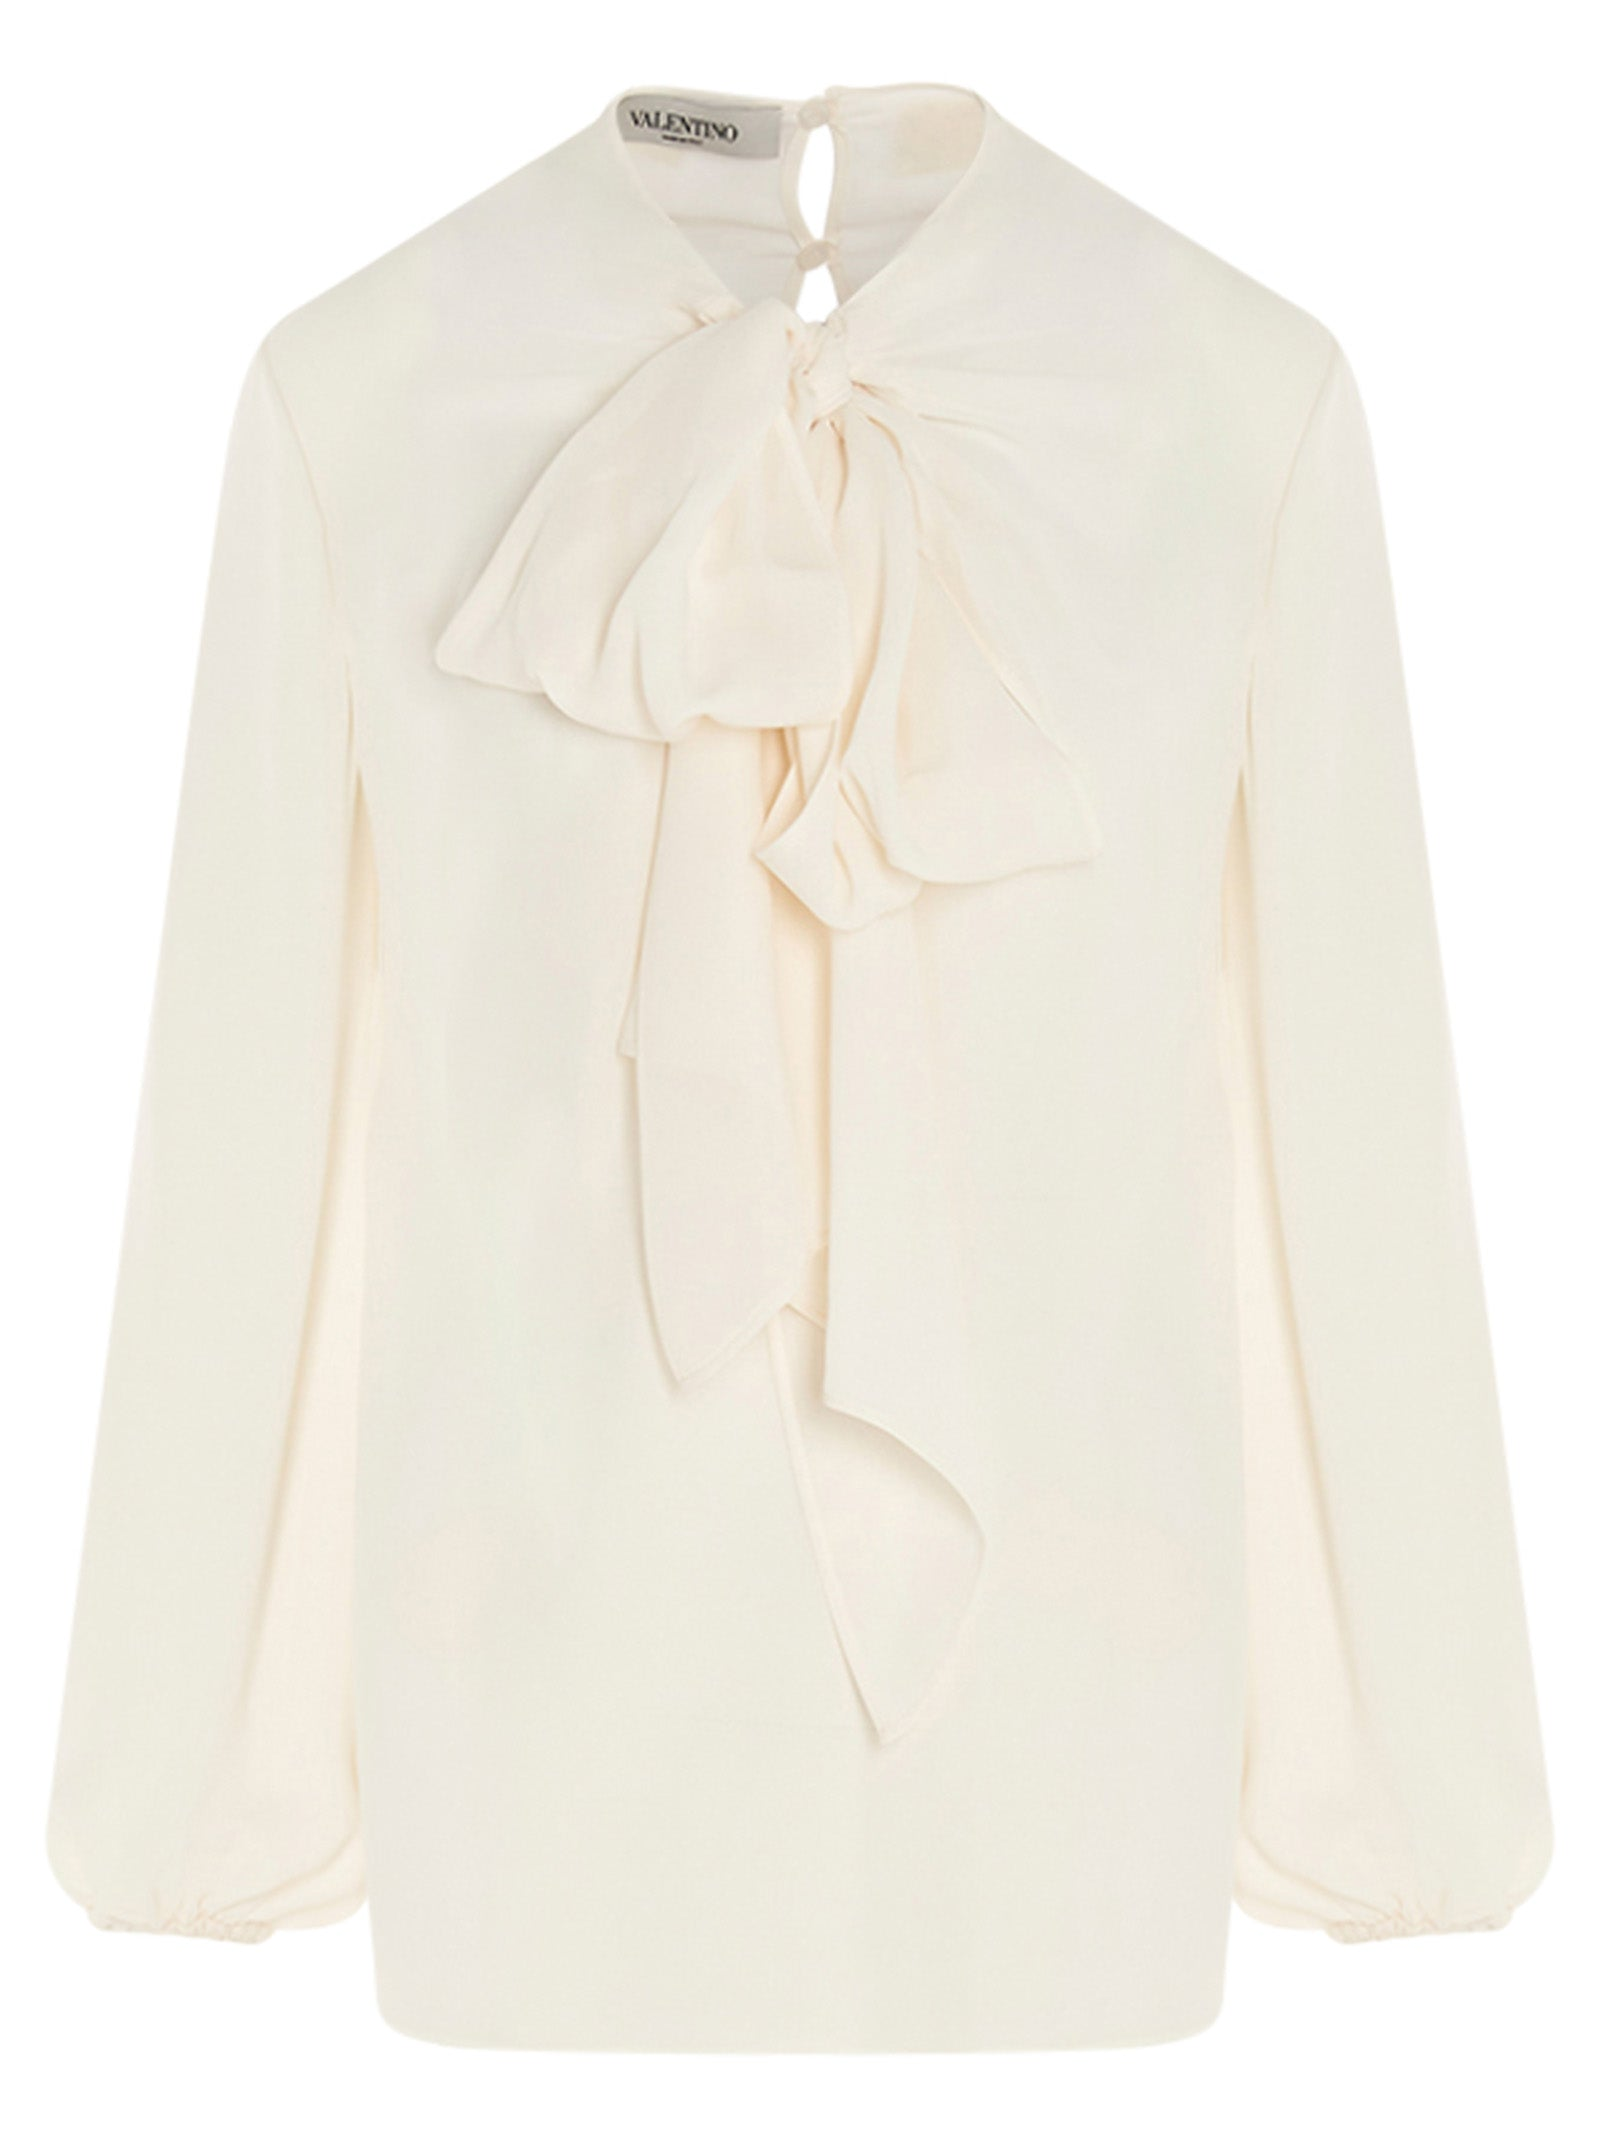 Valentino VALENTINO PUSSYBOW DETAILED BLOUSE